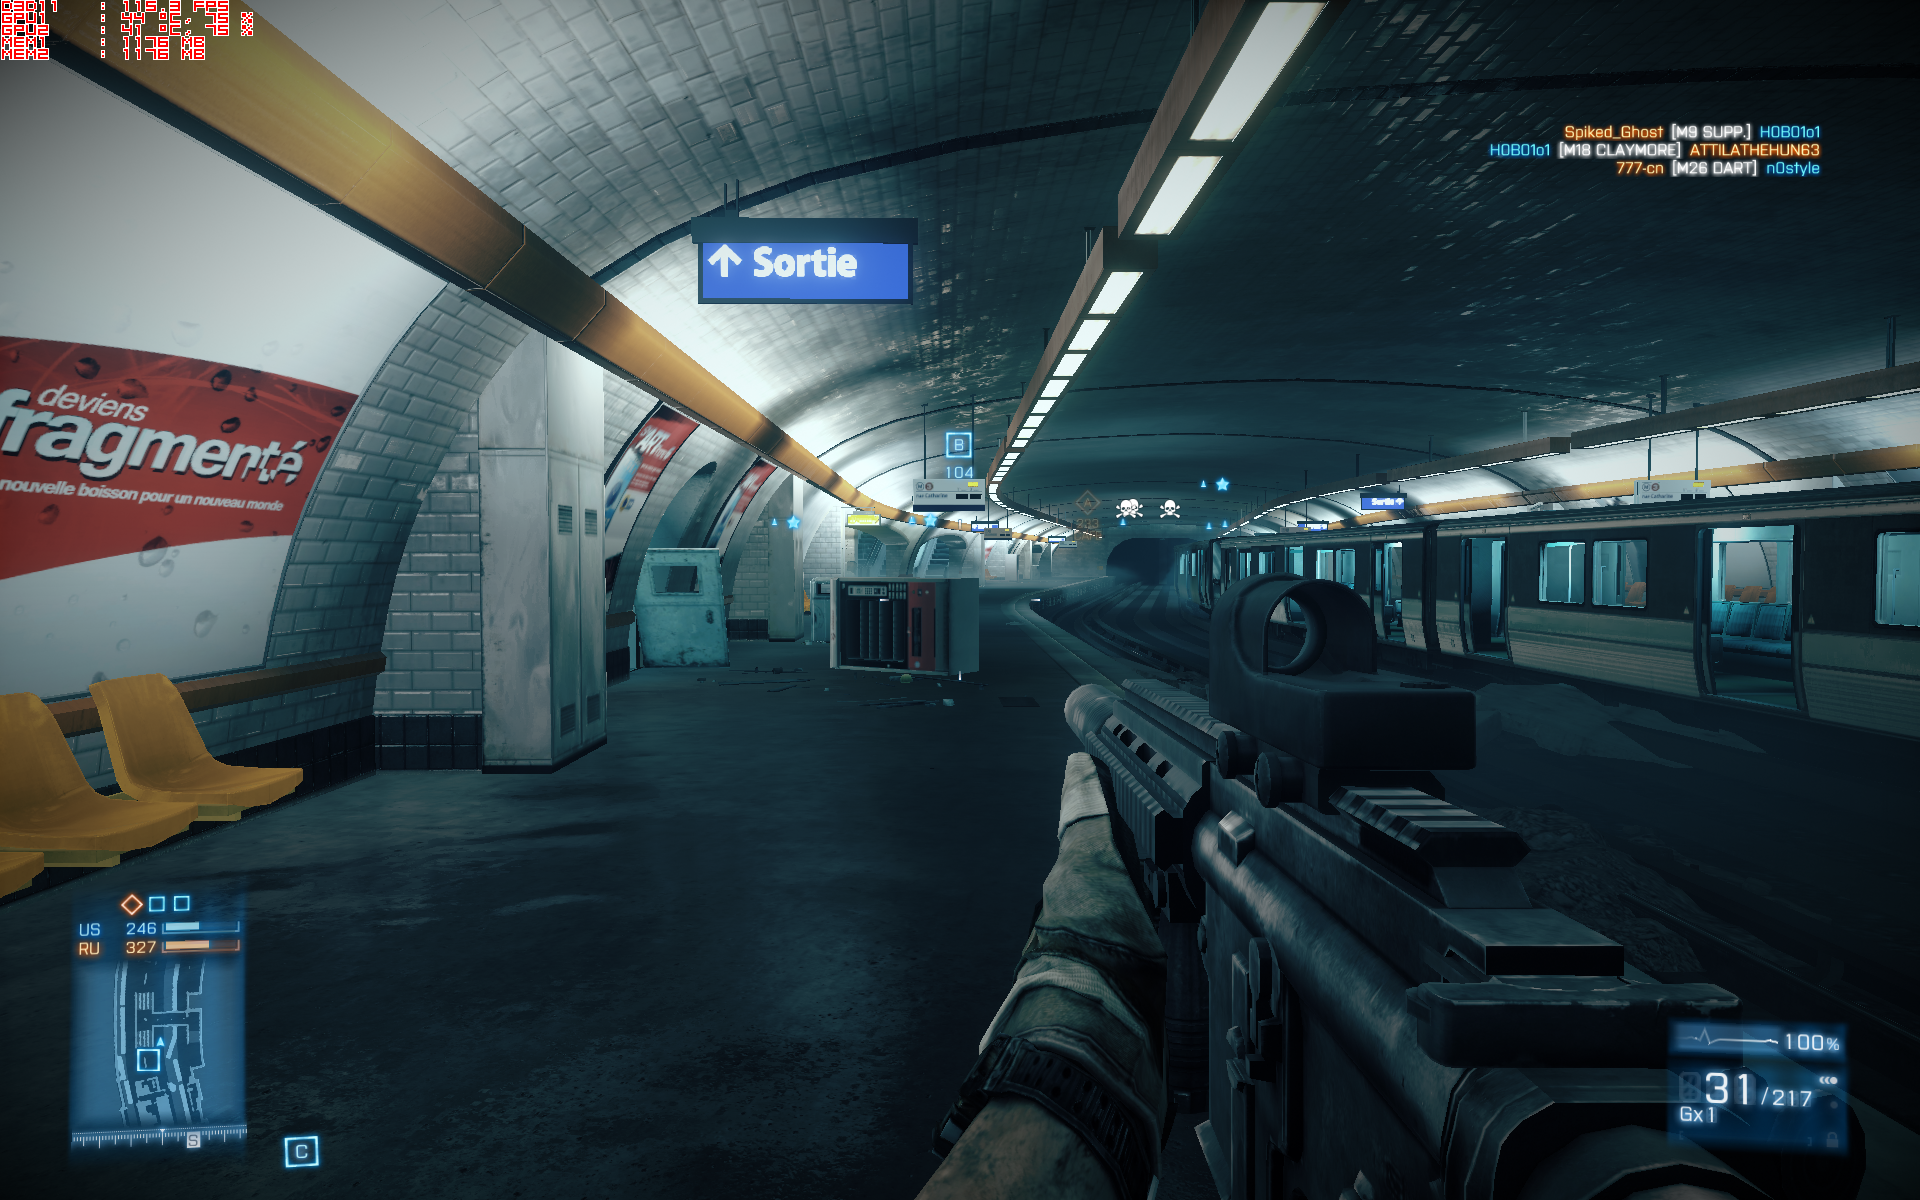 bf3 2012-02-12 23-21-34-13.png